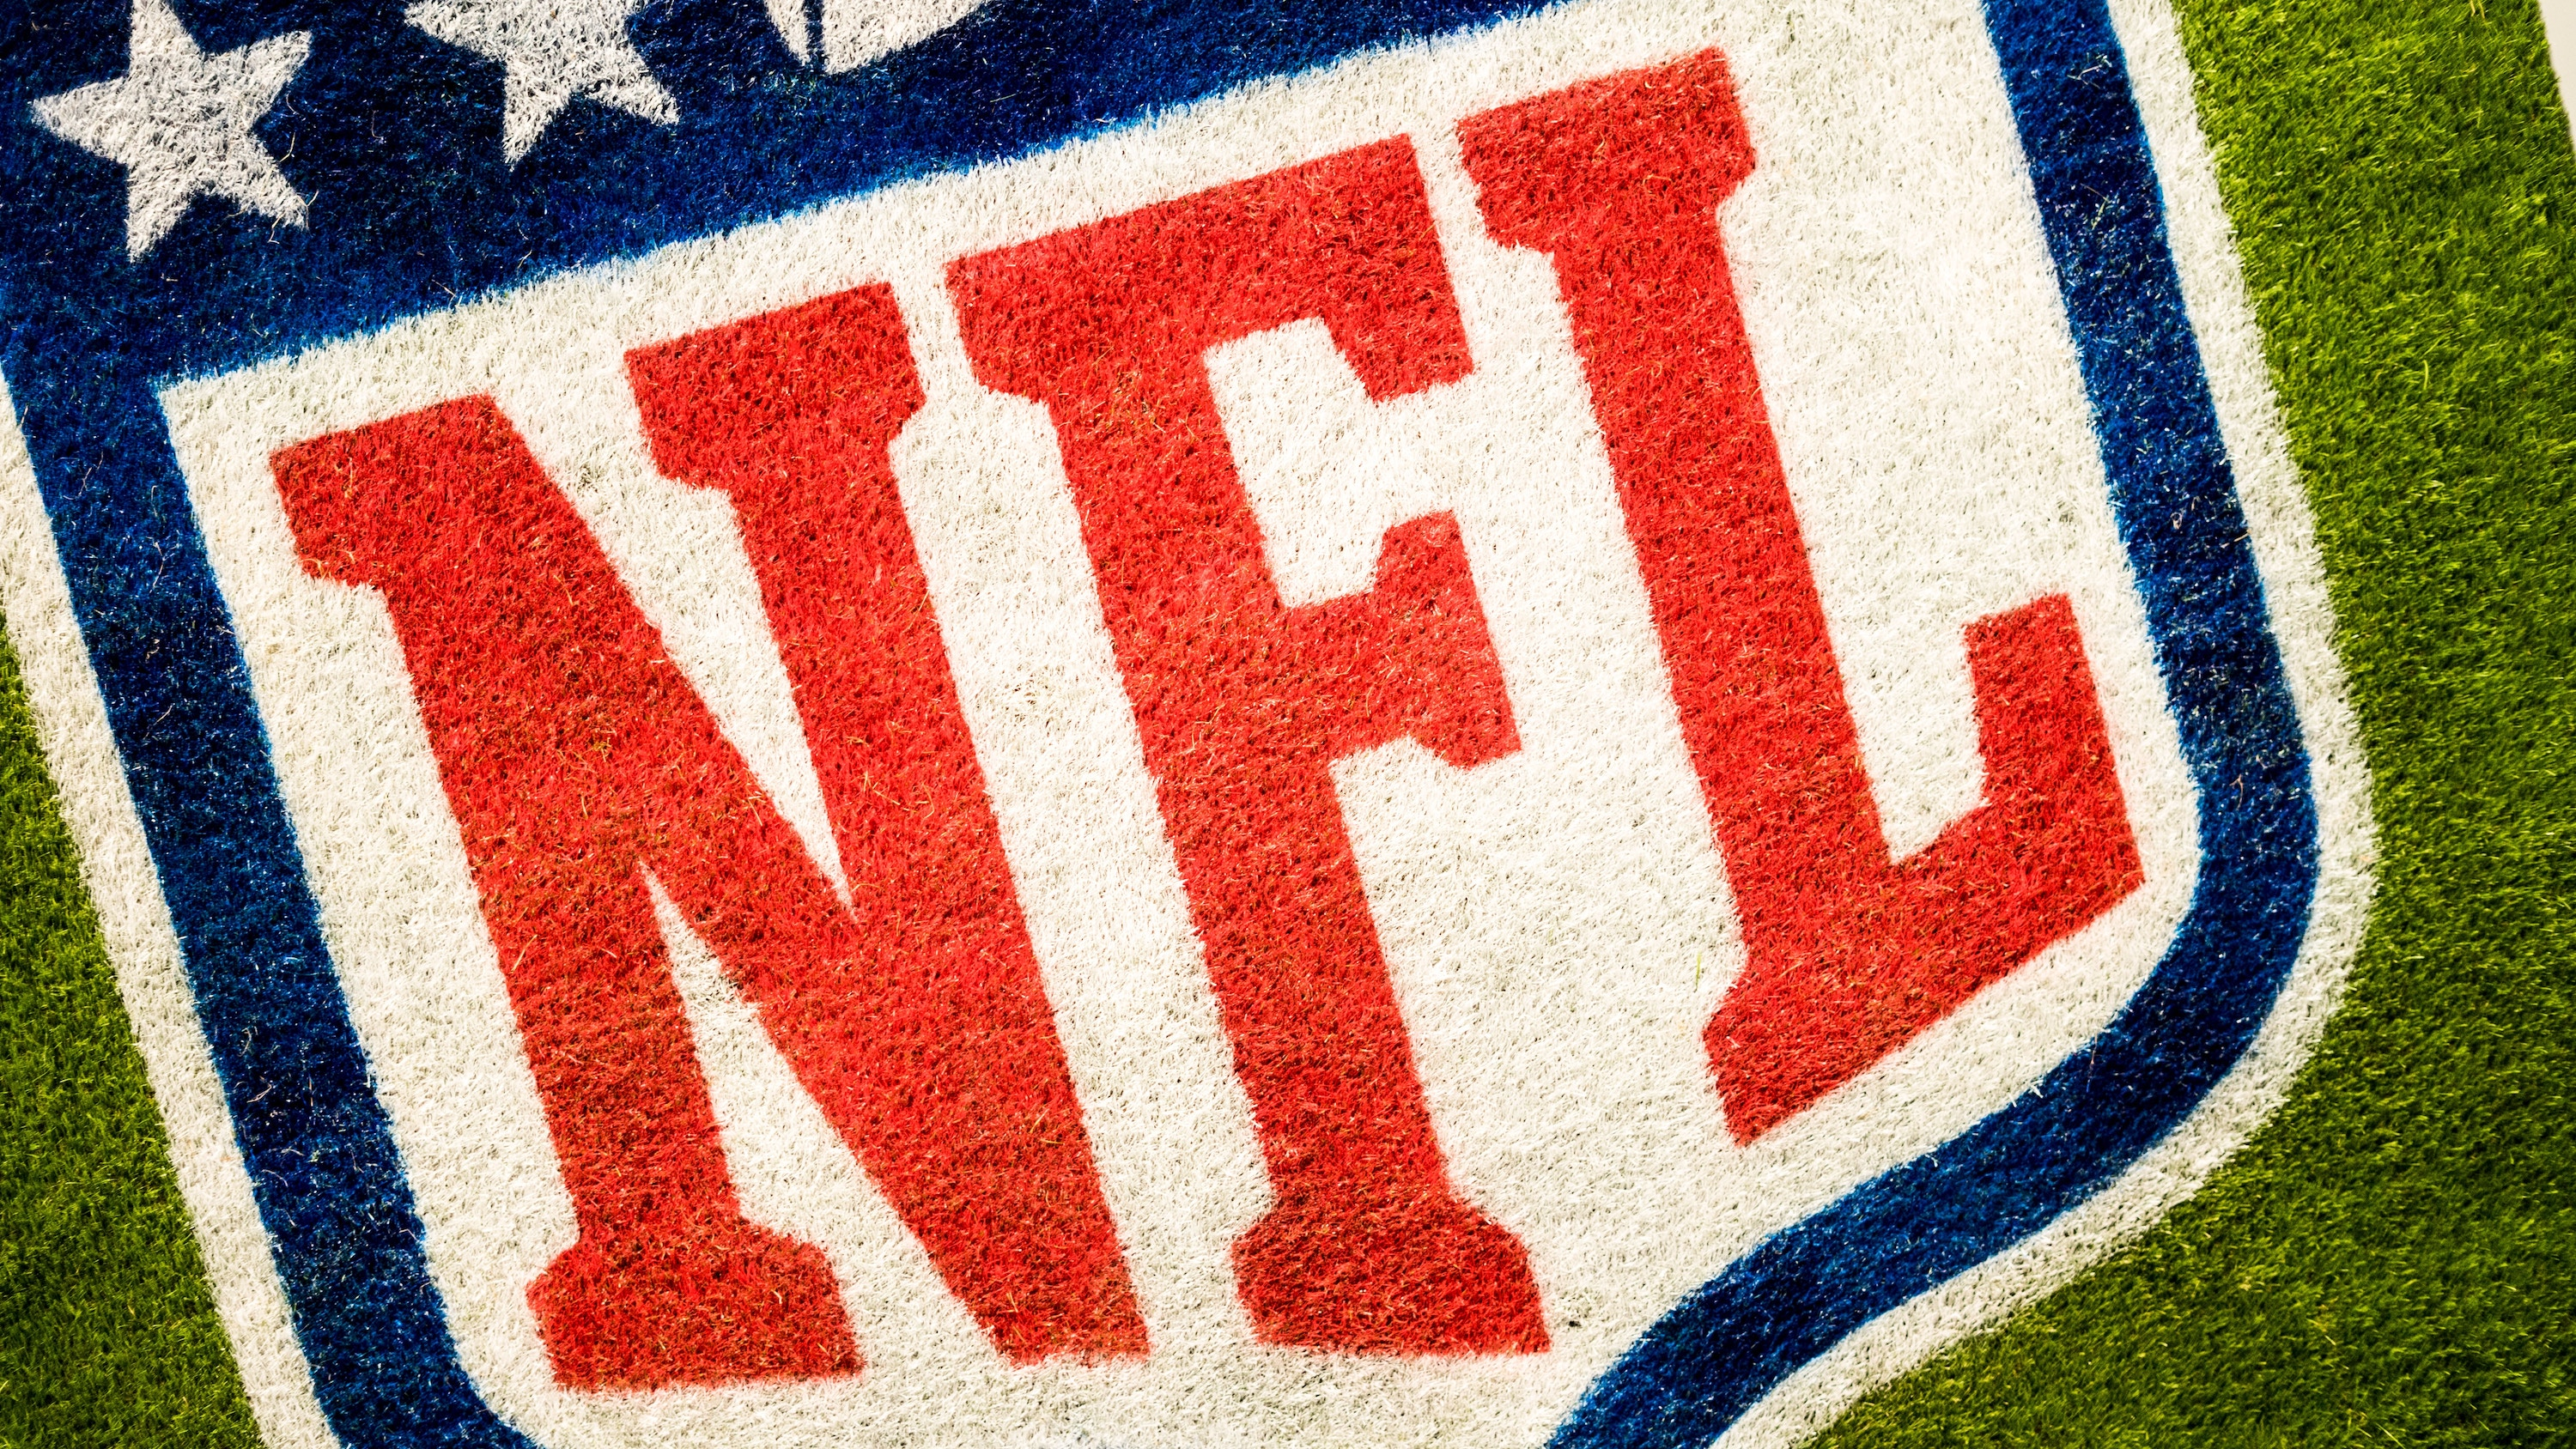 nfl badge printed on the grass